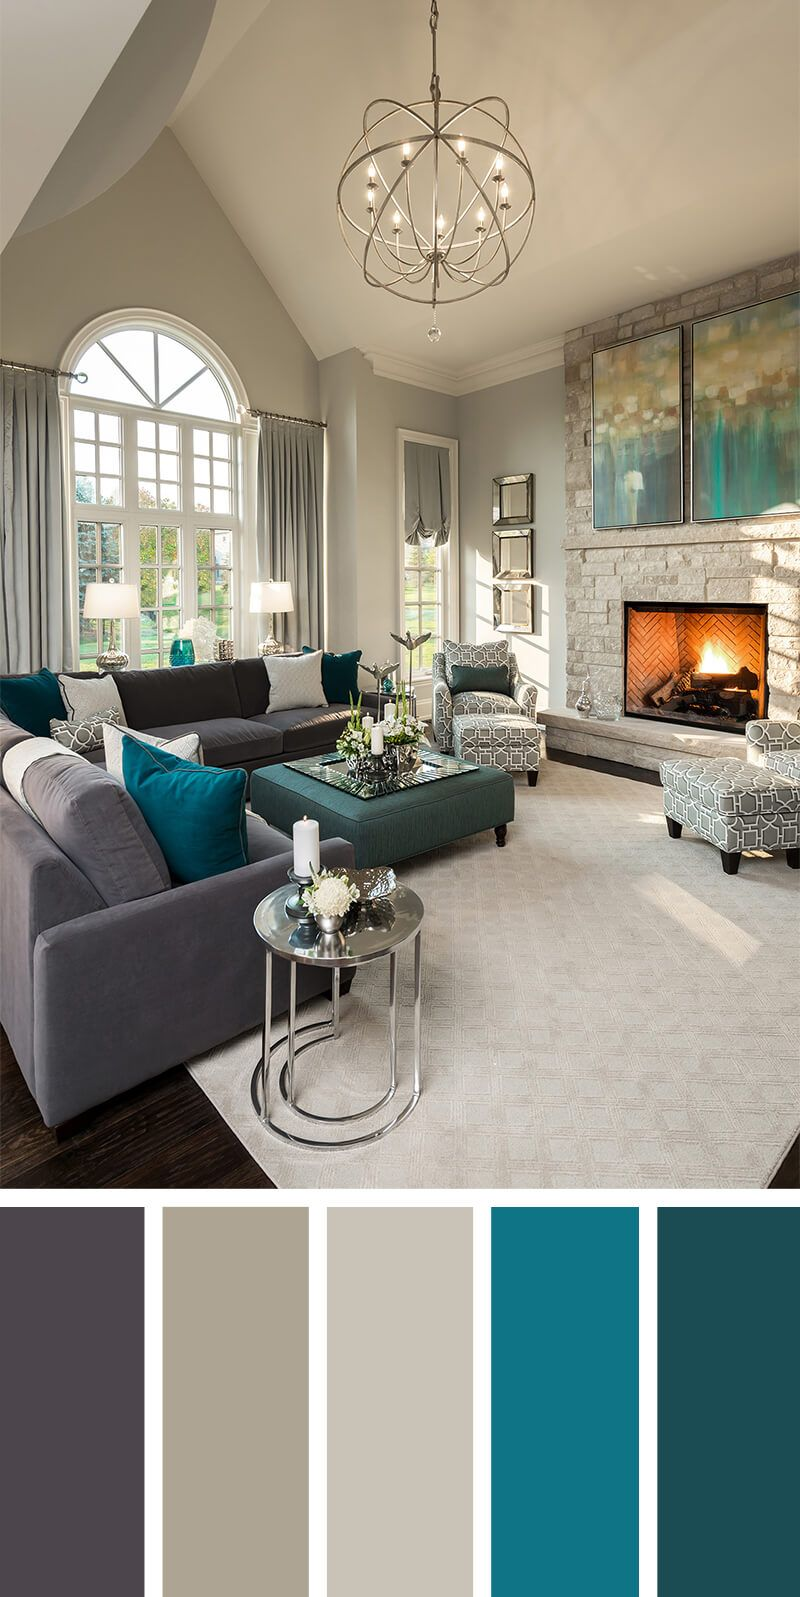 7 Living Room Color Schemes That Will Make Your Space Look Professionally Designed Living Room Color Schemes Good Living Room Colors Living Room Color